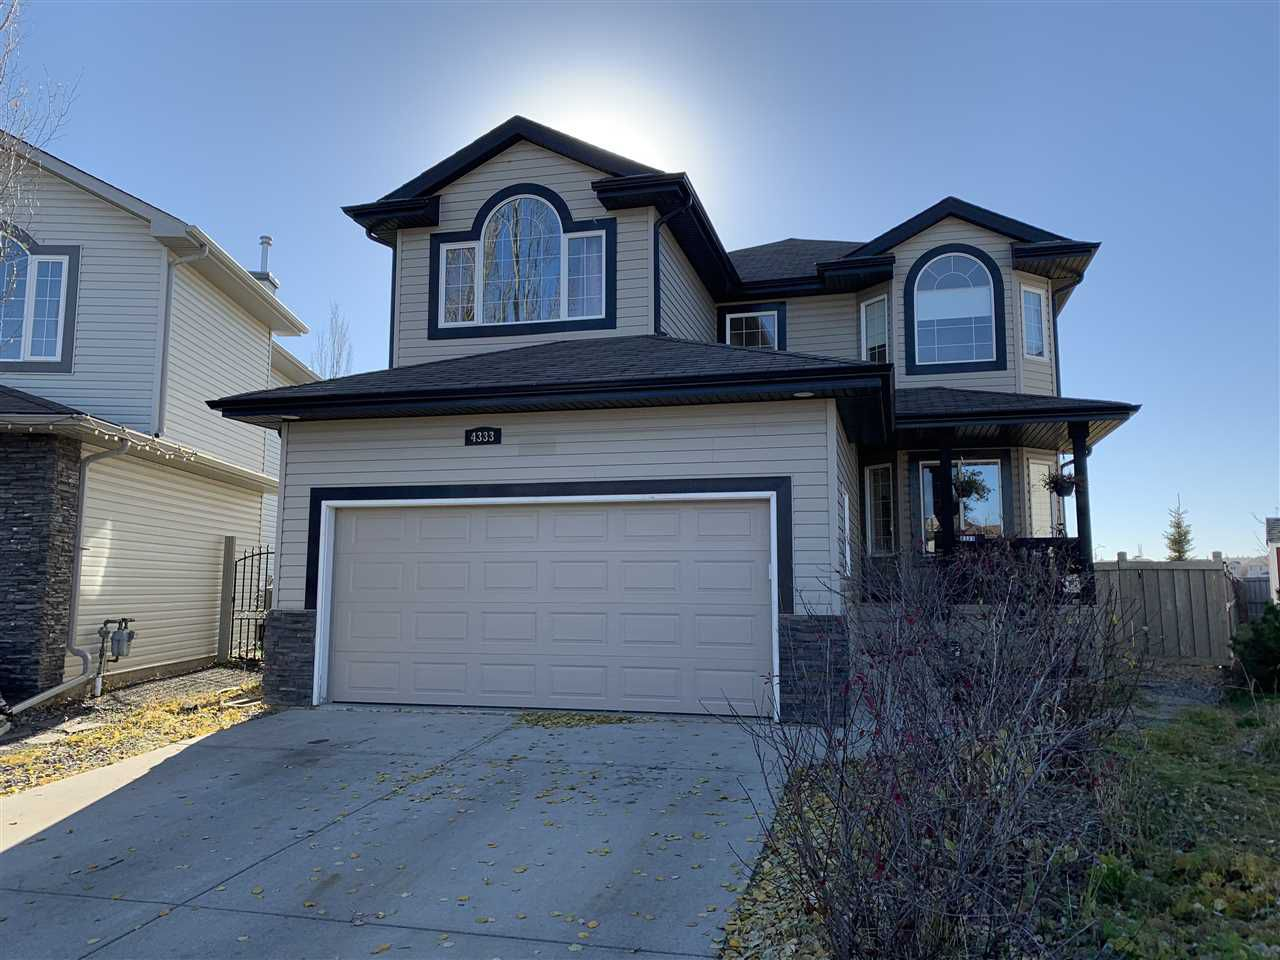 Main Photo: 4333 MCMULLEN Way in Edmonton: Zone 55 House for sale : MLS®# E4134219